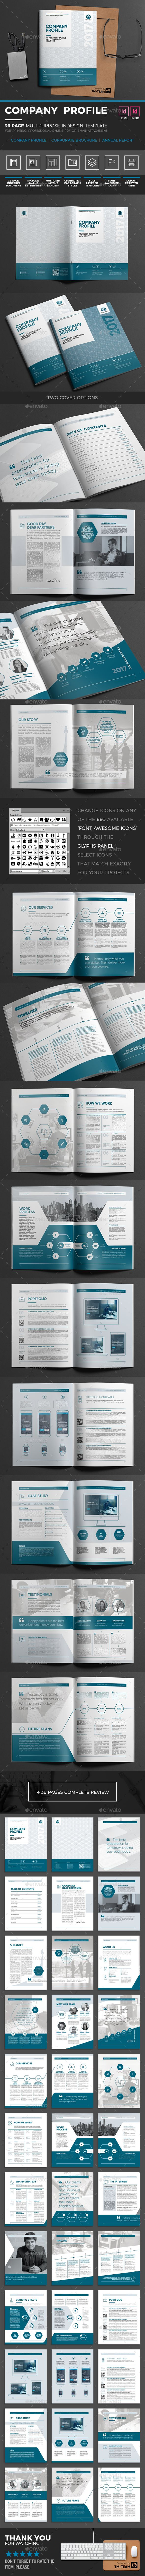 IT Company Profile - 36 Page Indesign Template | Revistas